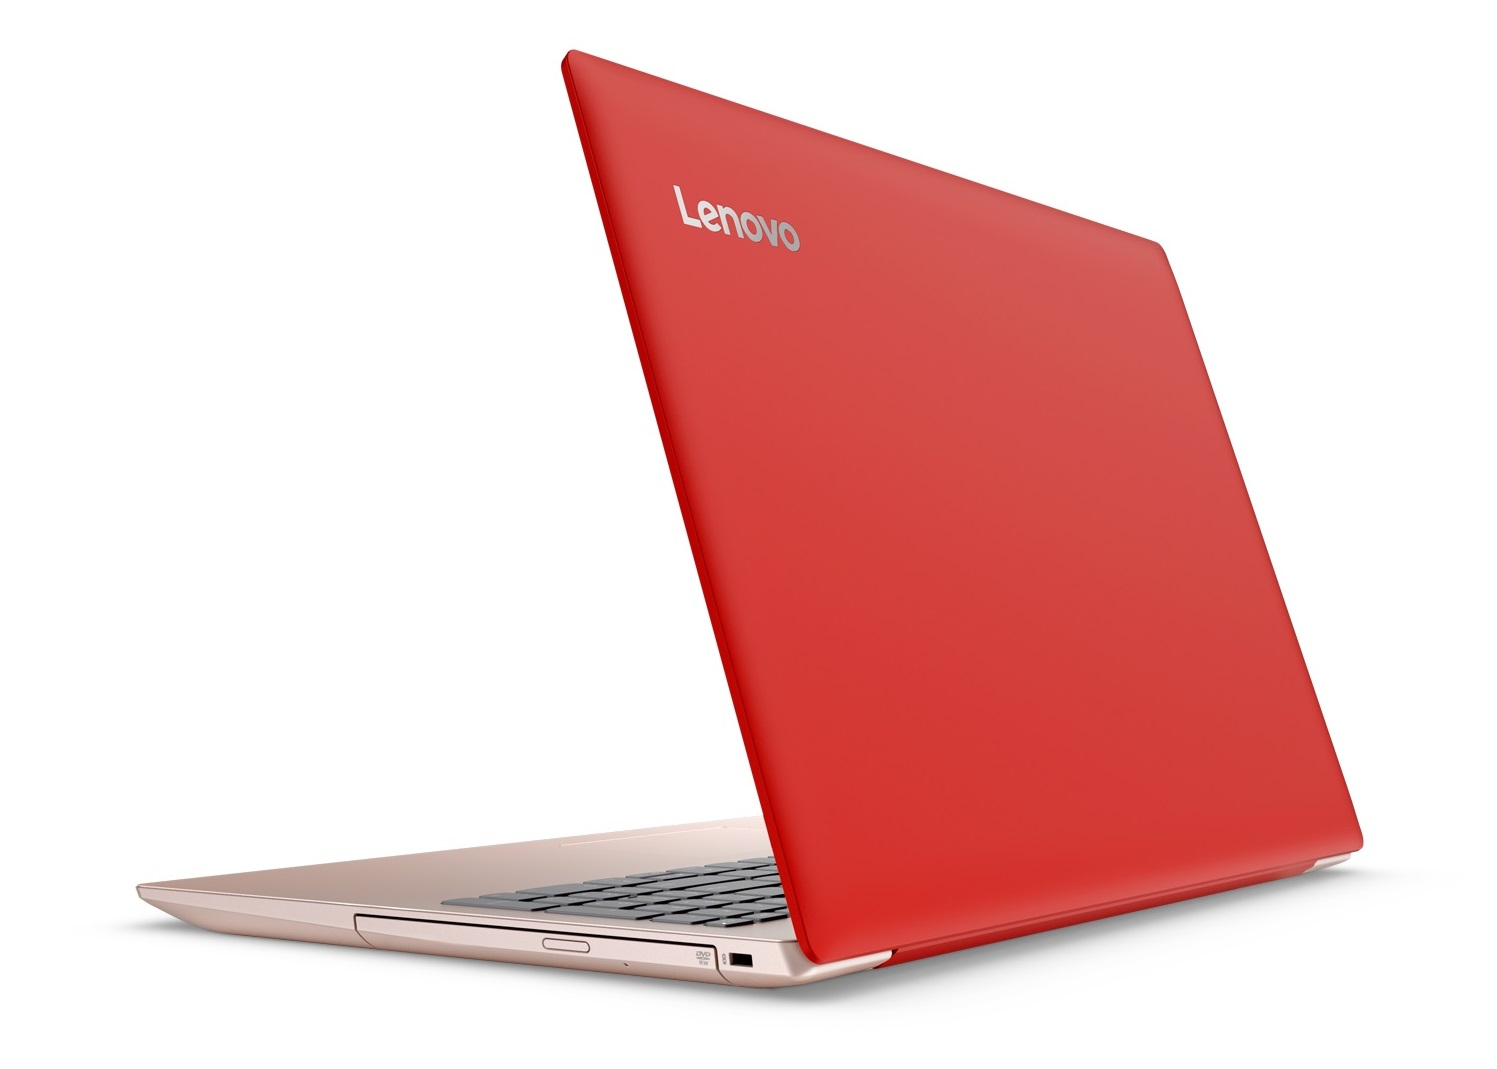 Фото  Ноутбук Lenovo ideapad 320-15IKB Coral Red (80XL03GYRA)